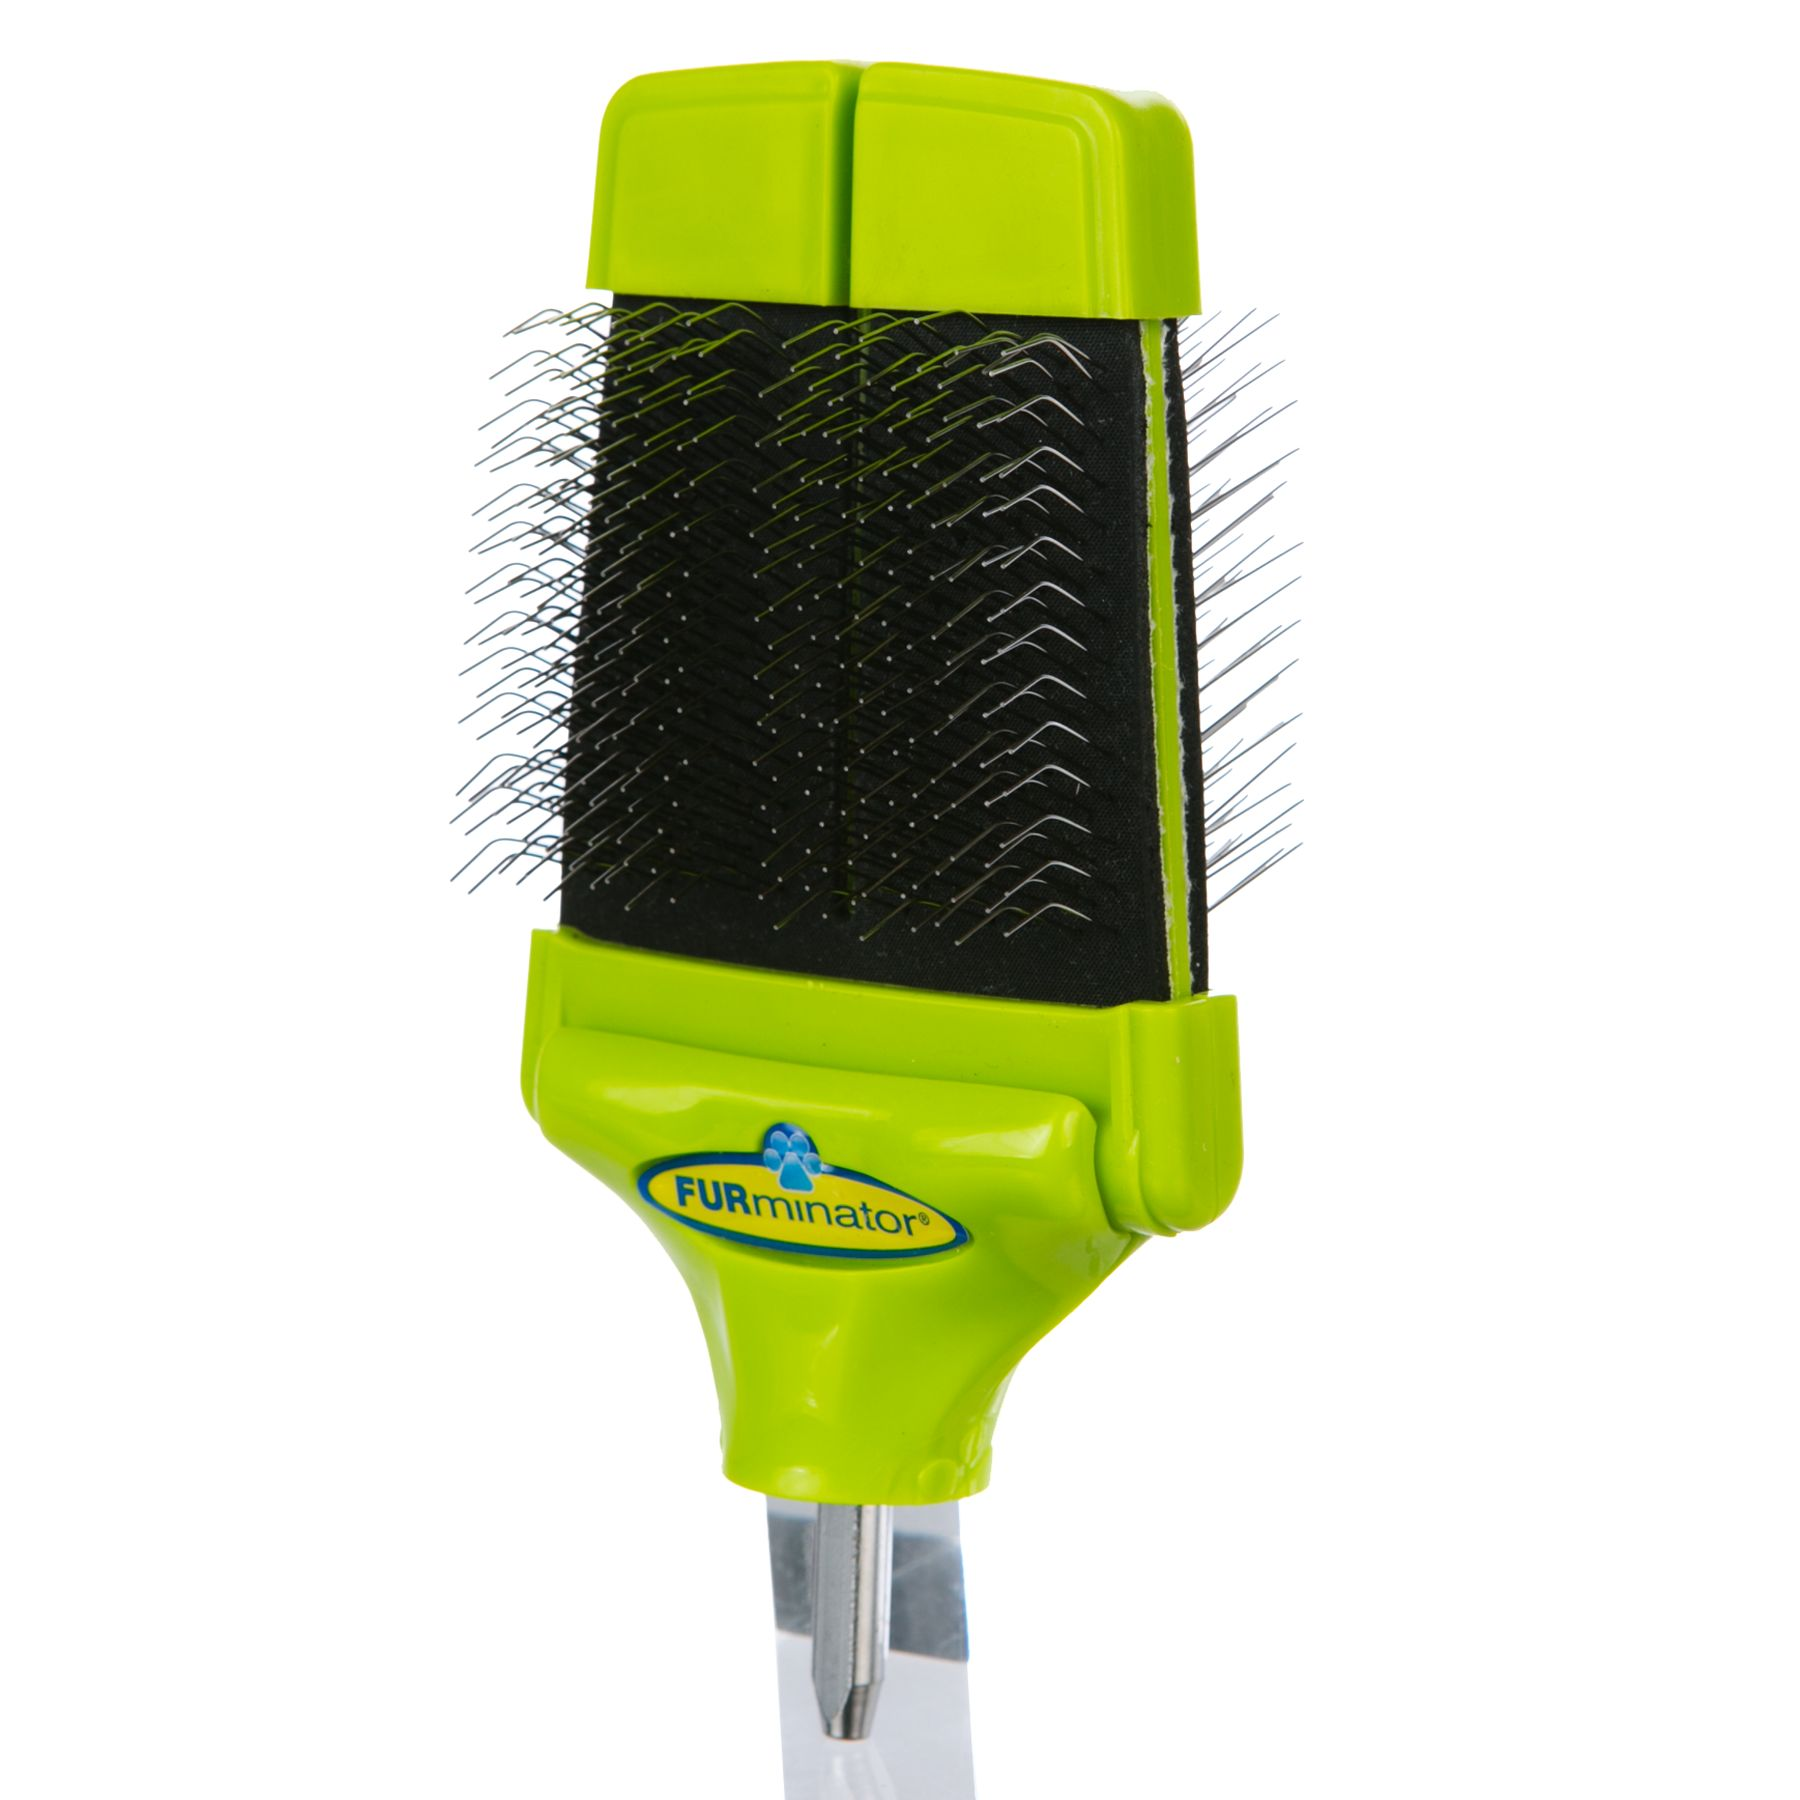 FURminator FURflex, Dual Slicker Brush Head Dog Tool 5238735